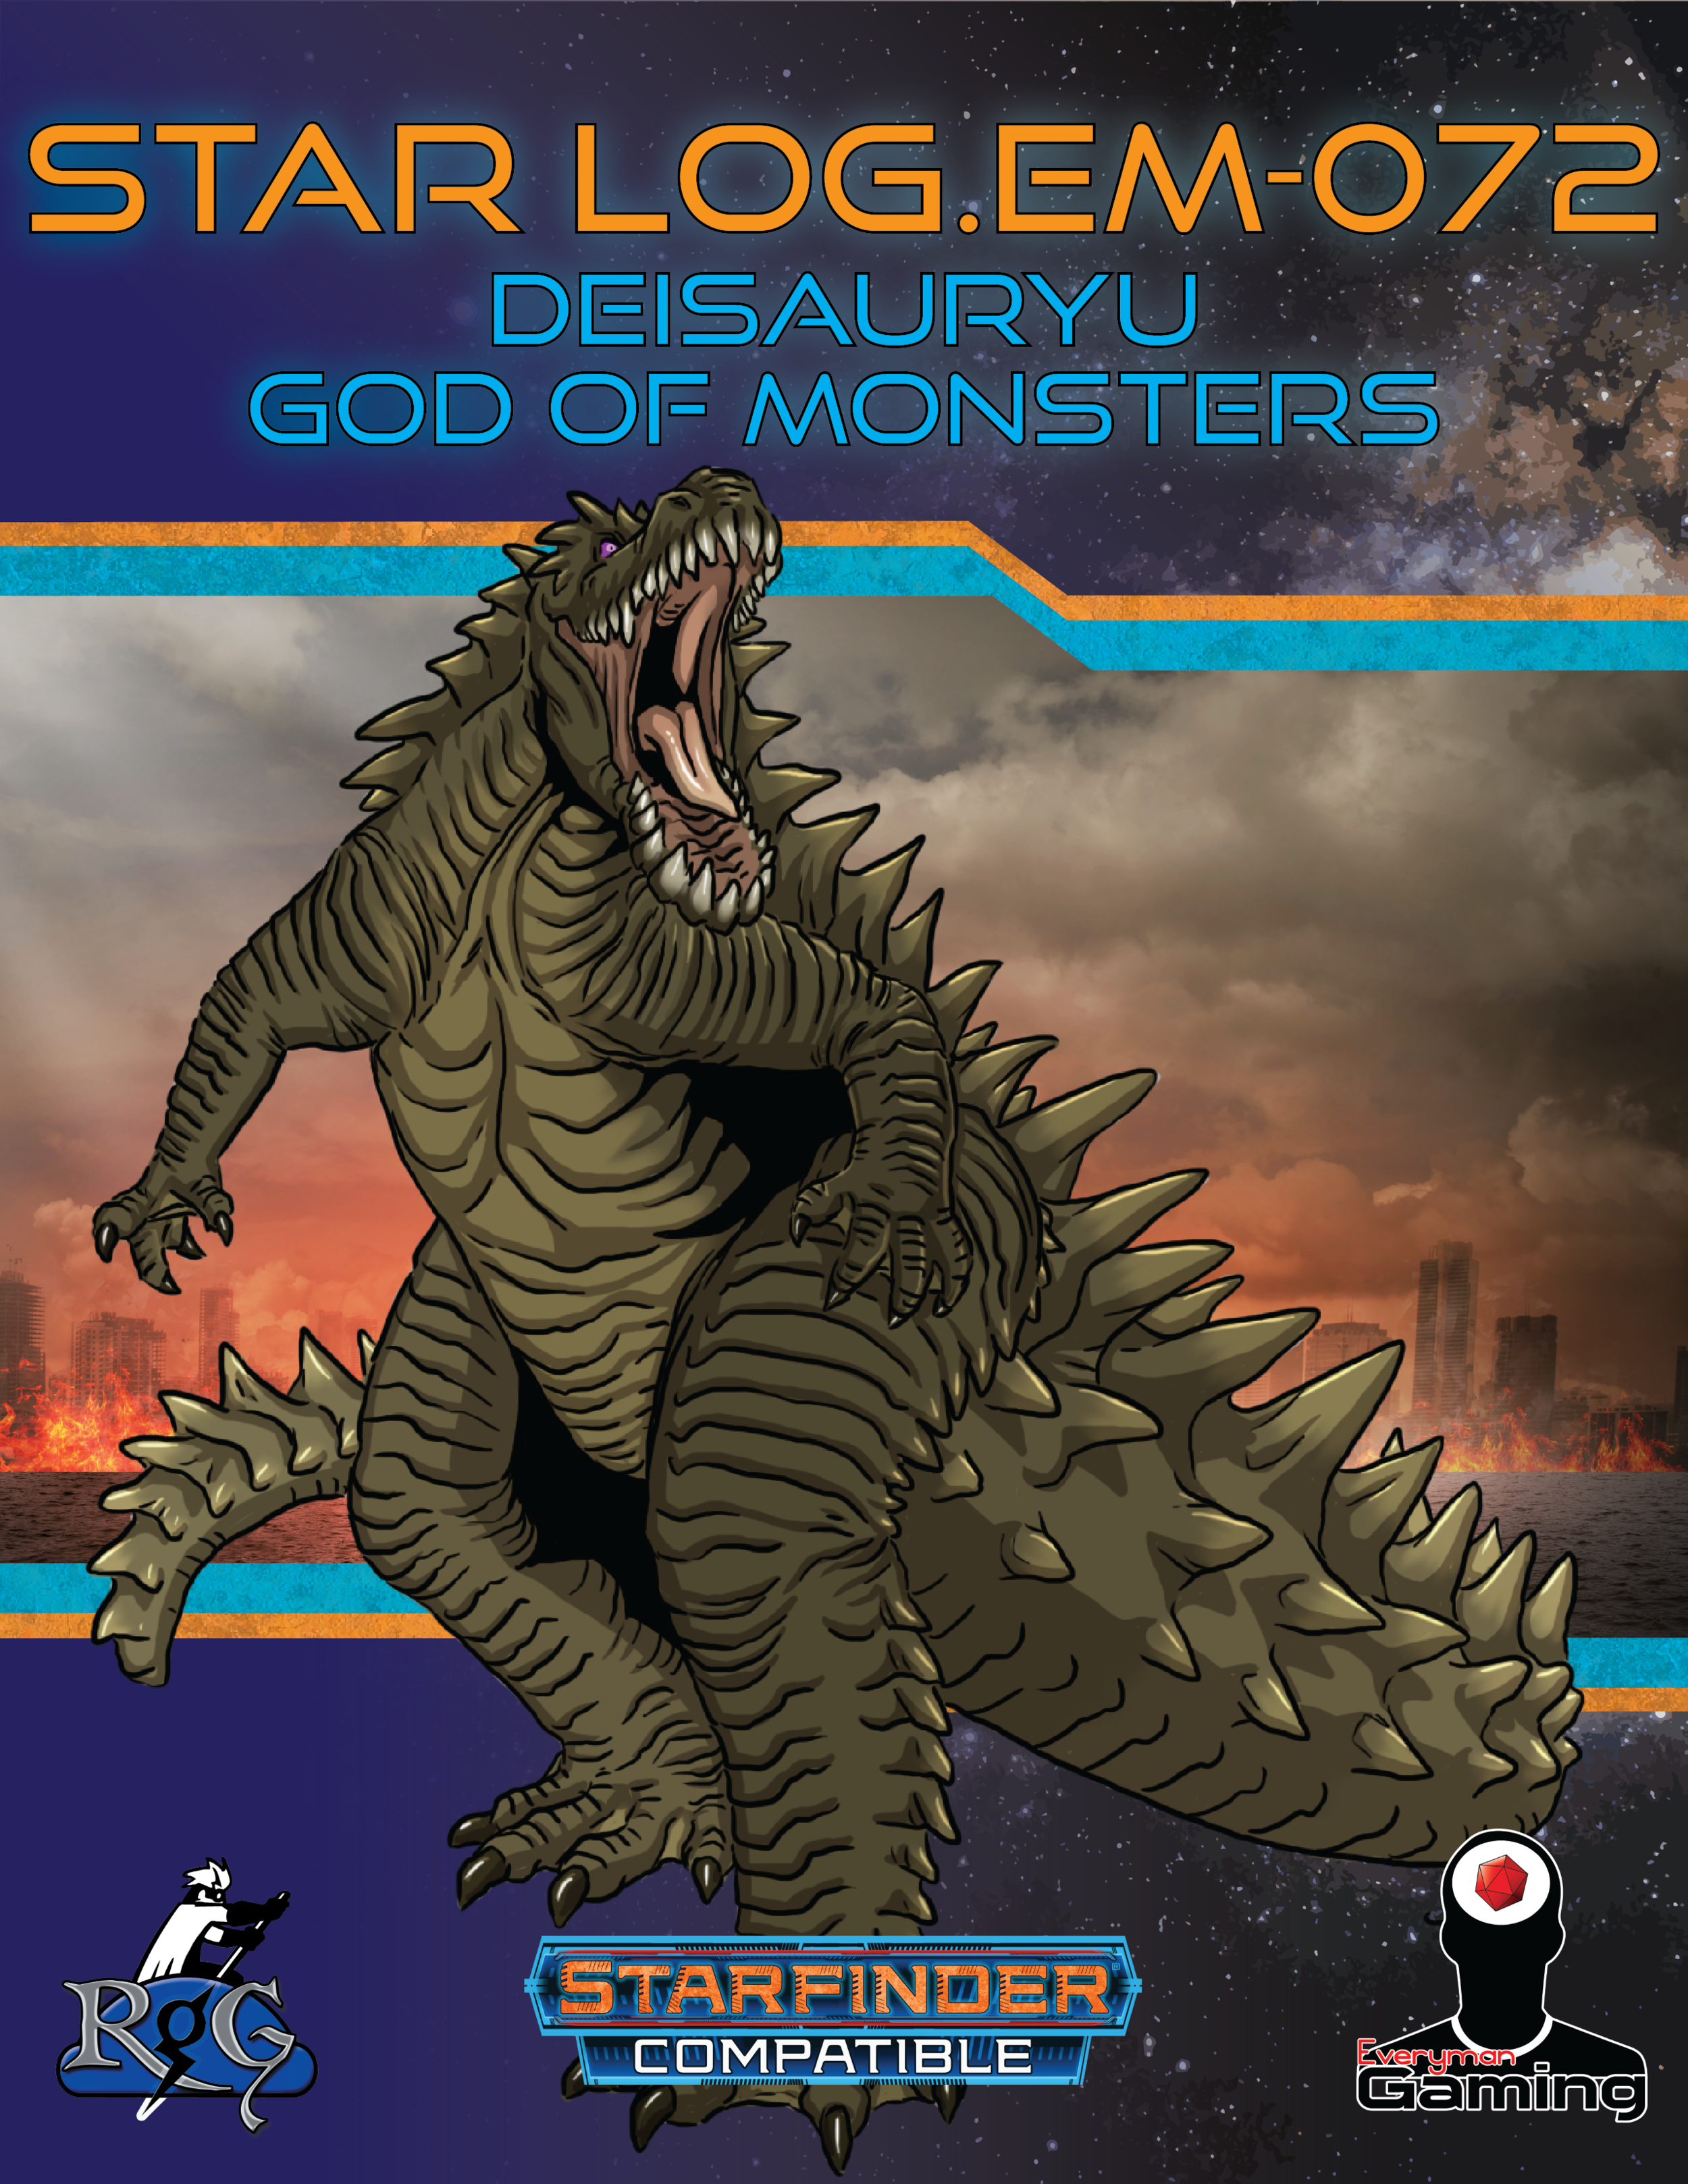 SLEM072 Deisauryu God of Monsters.png